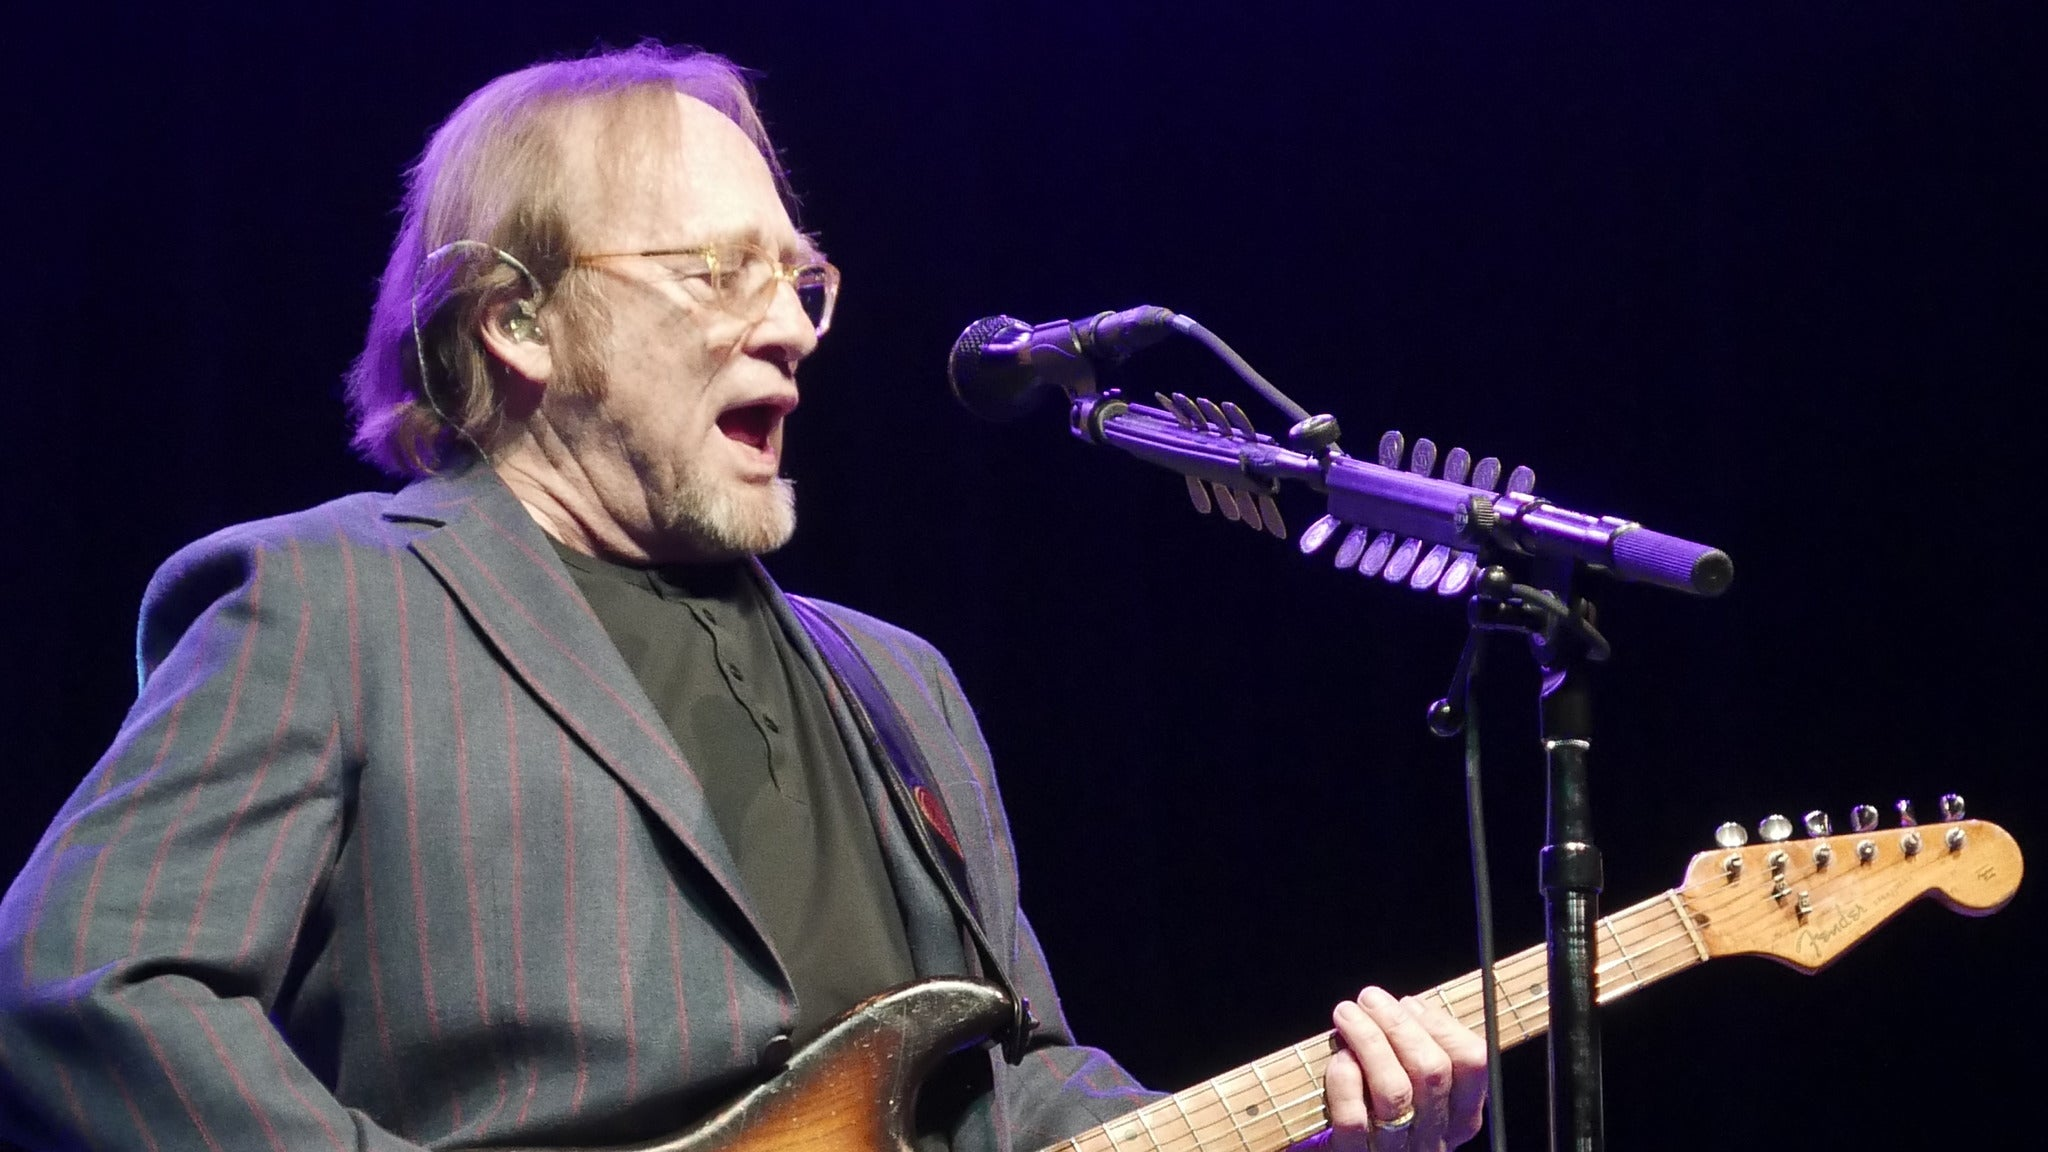 Stephen Stills w/ Judy Collins at Smith Opera House